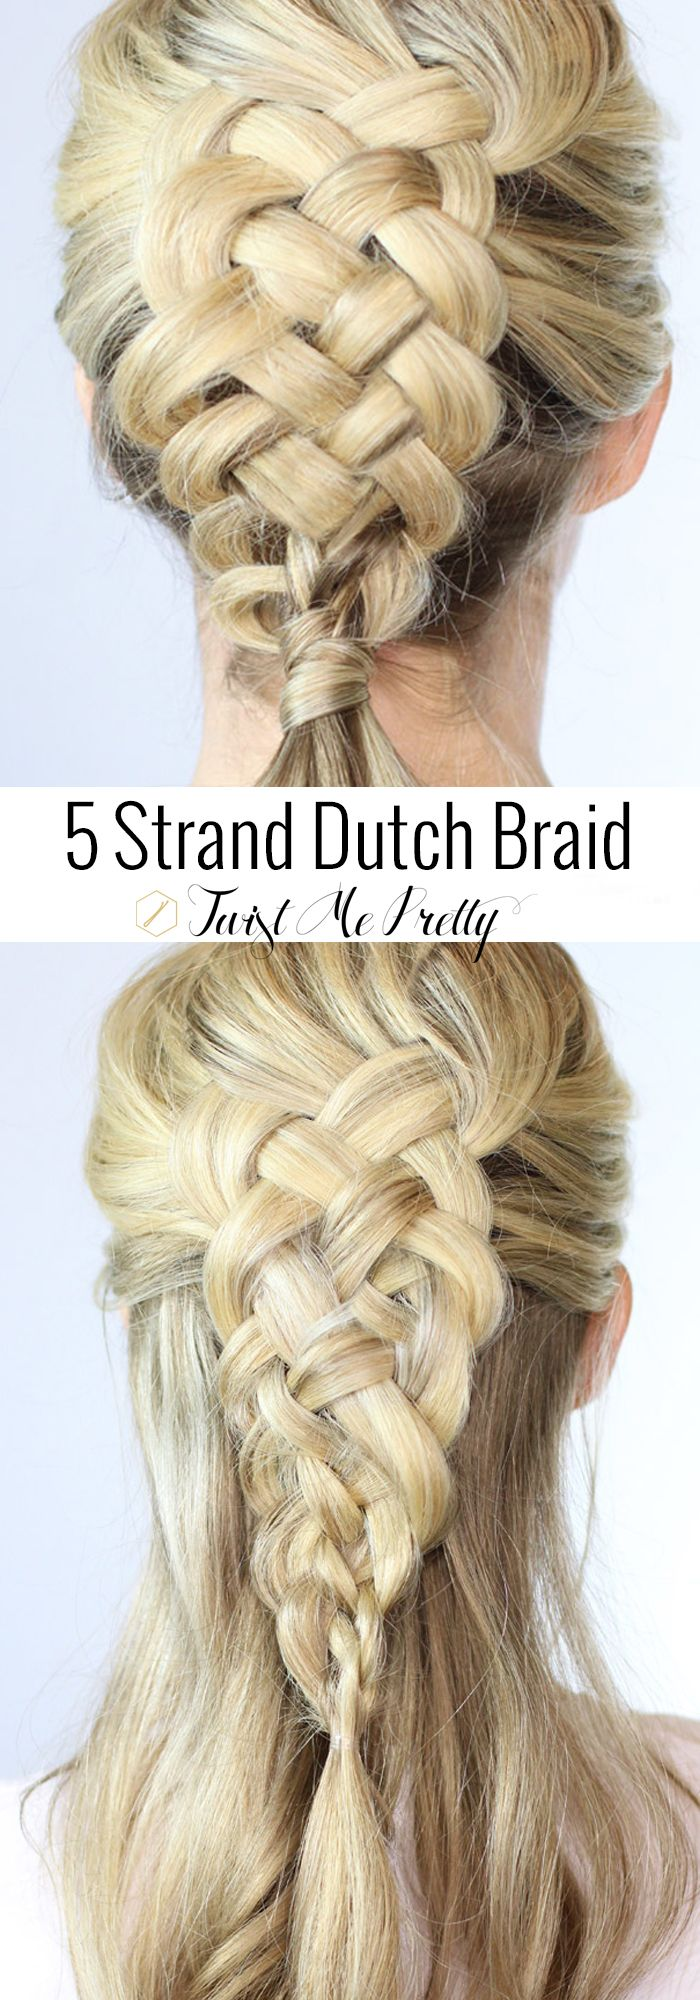 5-Strand Dutch Braid